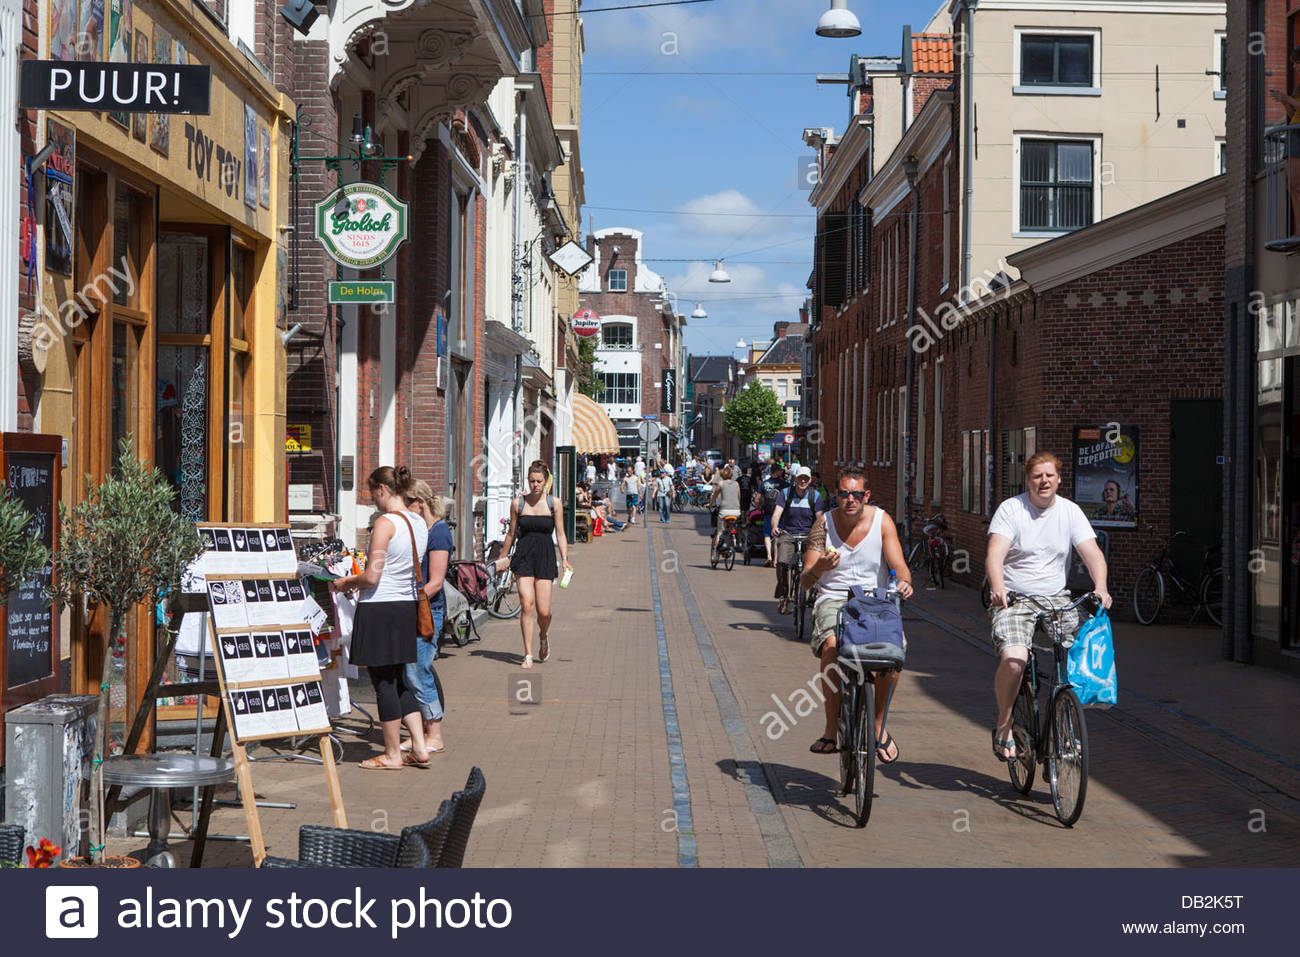 shopping street in the city center of groningen in the netherlands stock photo royalty free. Black Bedroom Furniture Sets. Home Design Ideas